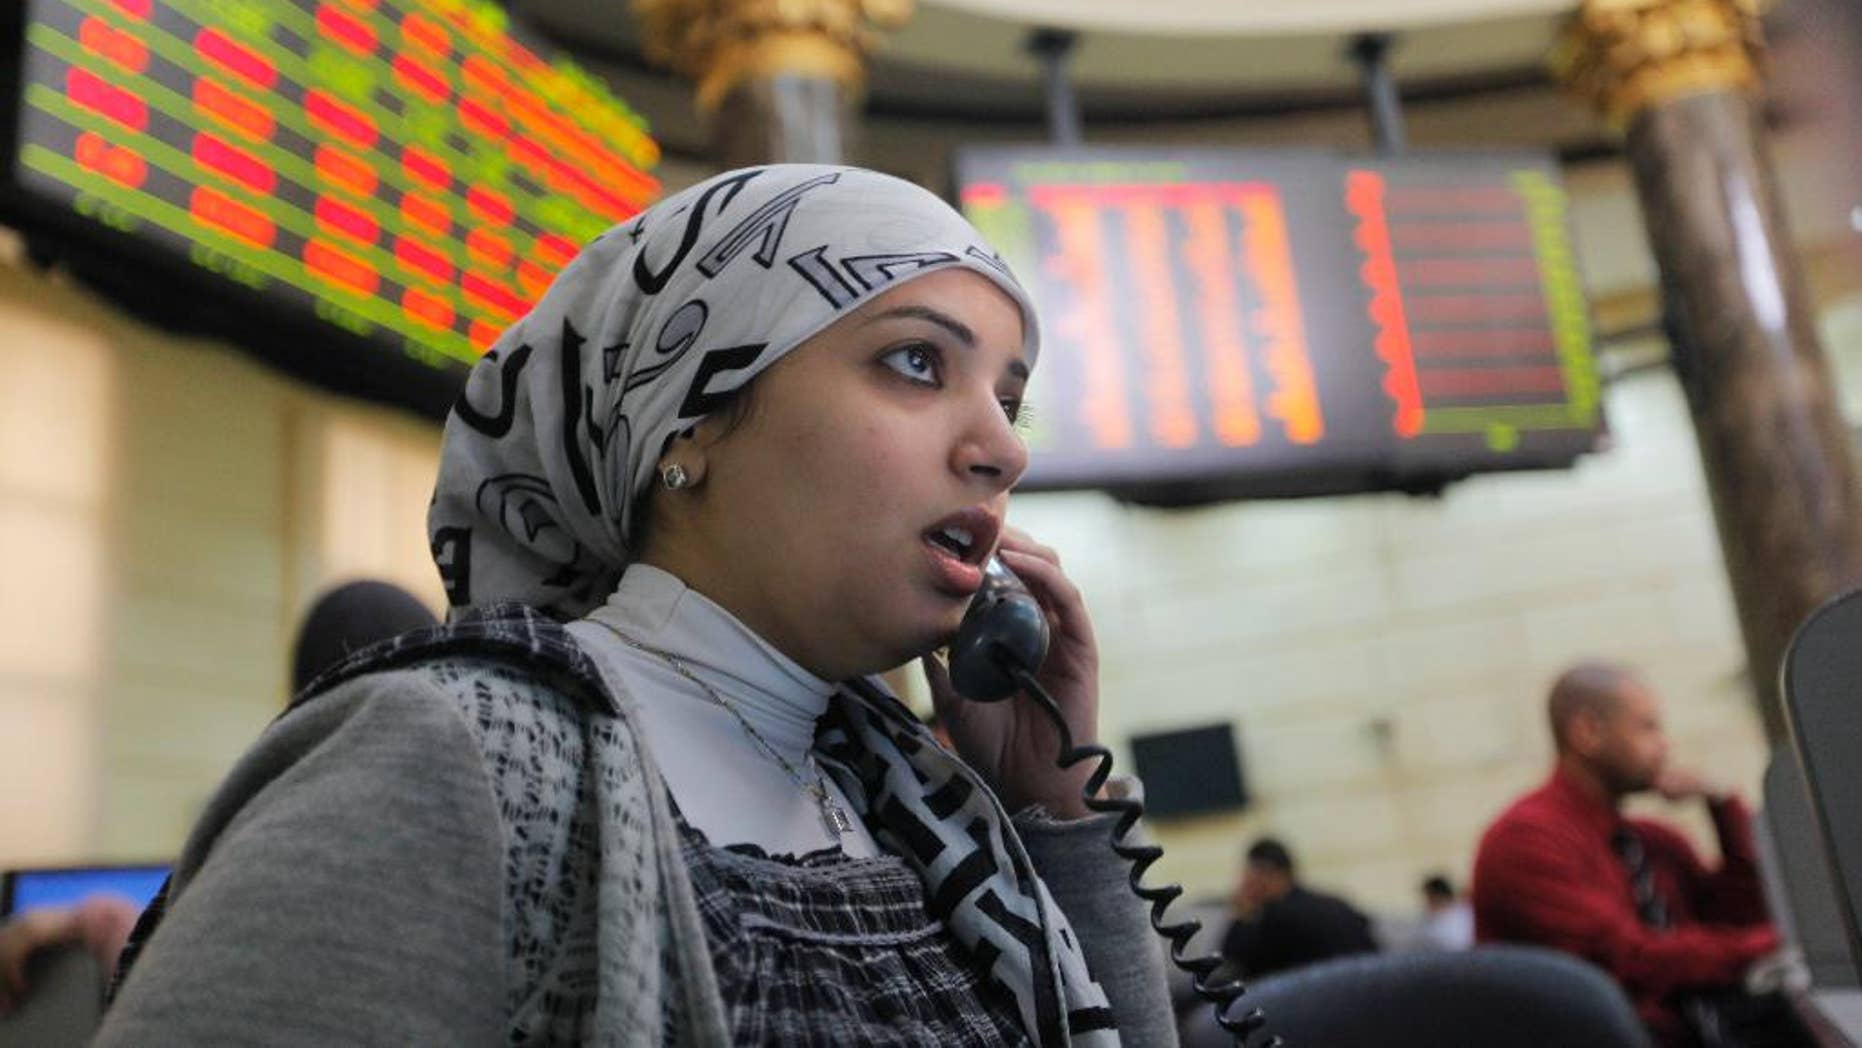 FILE - In this March 10, 2013 file photo, an Egyptian trader talks as she monitors her screen at the Egyptian Stock Exchange, in Cairo, Egypt.  Dubai-based Emaar Properties, the property developer behind the record-breaking Burj Khalifa skyscraper in Dubai, said Wednesday, May 20, 2015, that it will float shares in its Egyptian subsidiary on the Egyptian Stock Exchange to raise cash for ongoing and future projects in the North African nation. (AP Photo/Amr Nabil, File)